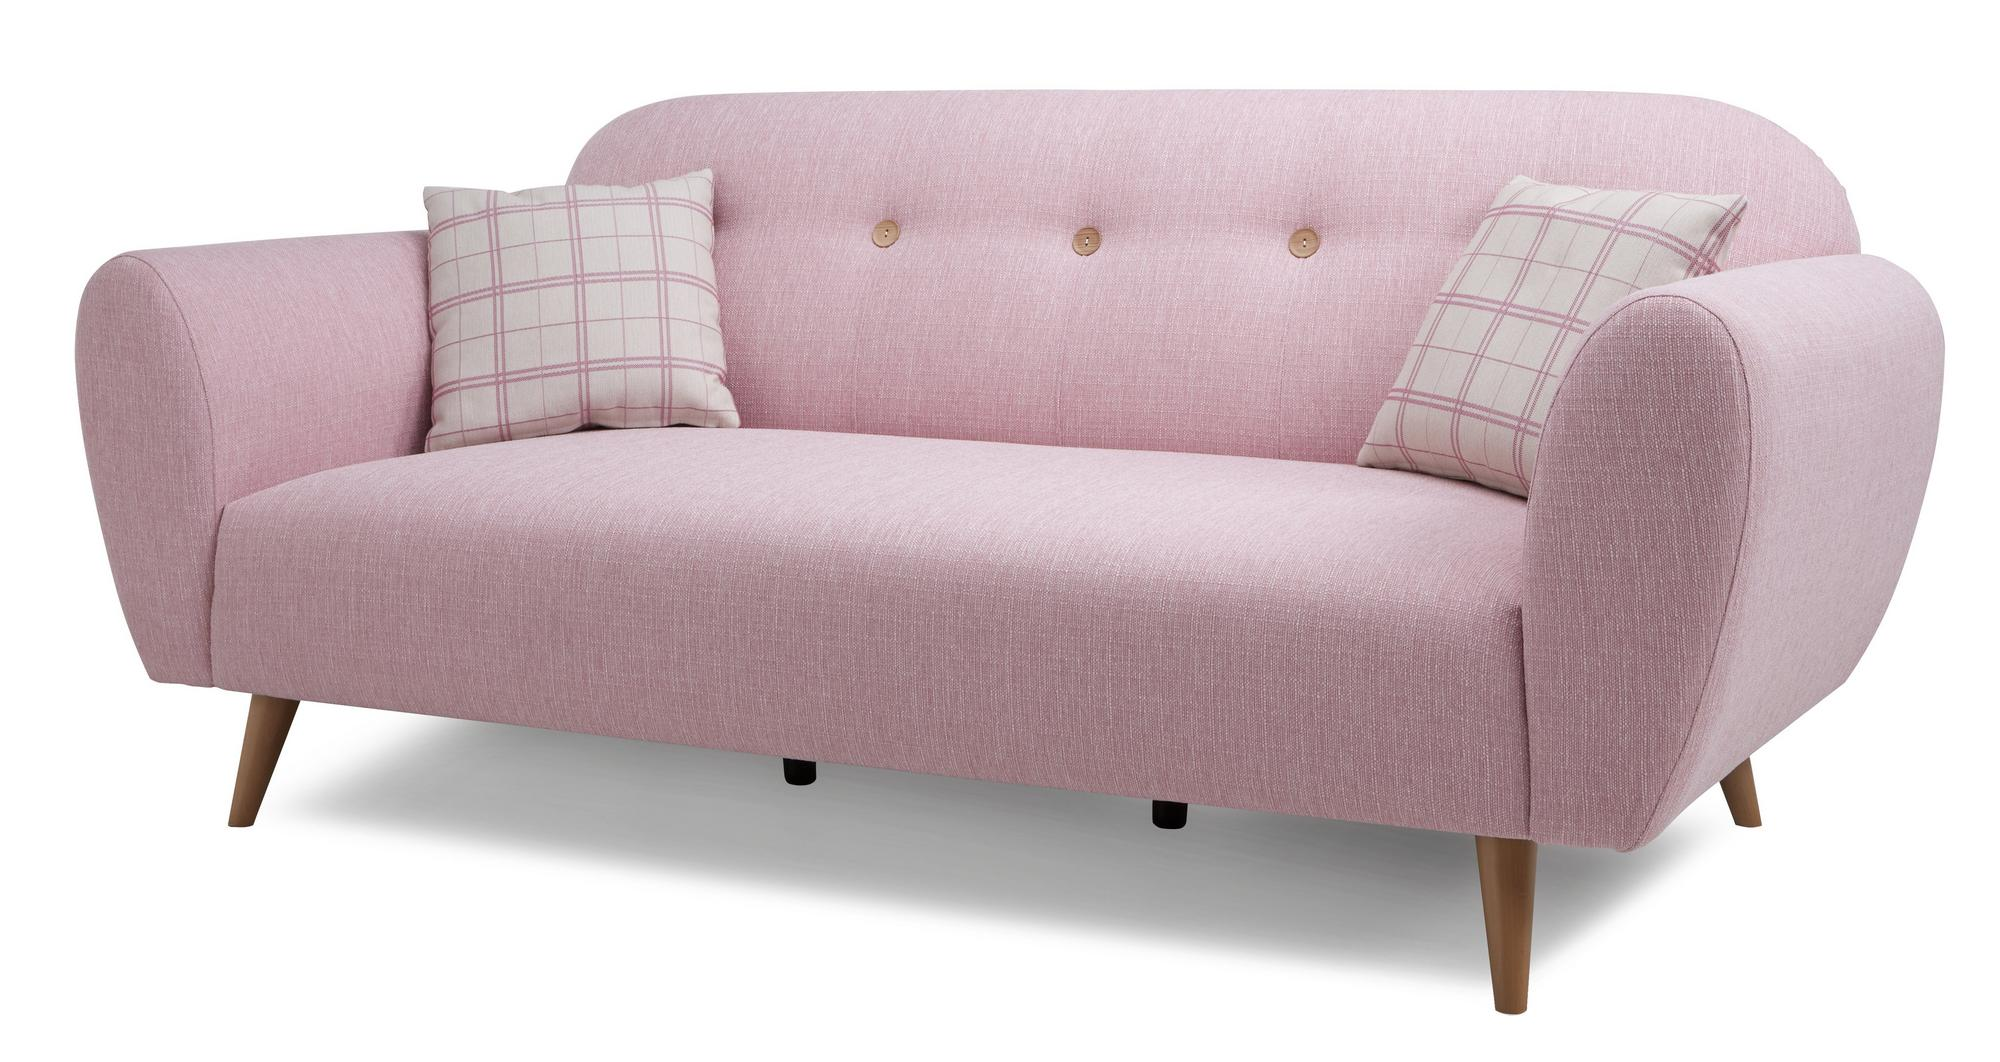 dfs betsy pink 3 seater fabric sofa 49950 ebay. Black Bedroom Furniture Sets. Home Design Ideas